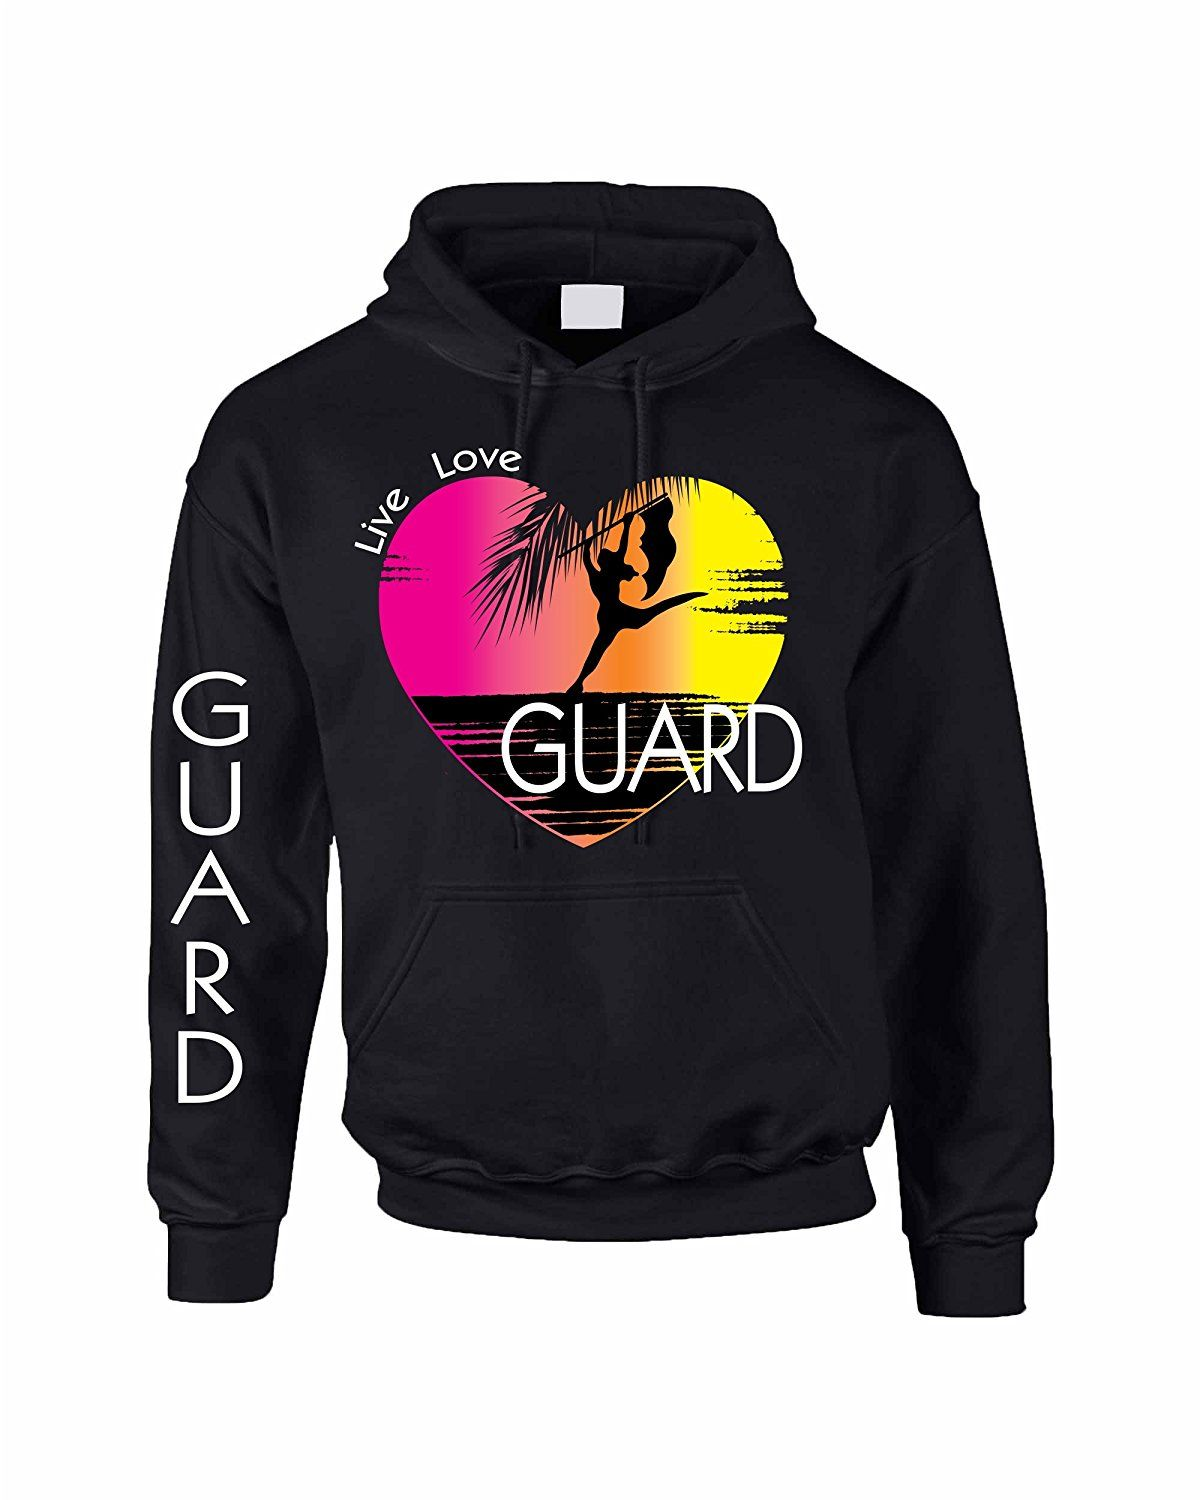 Allntrends Adult Hoodie Sweatshirt Guard Art Pink Print Love Cool -- This is an Amazon Affiliate link. Click image for more details.